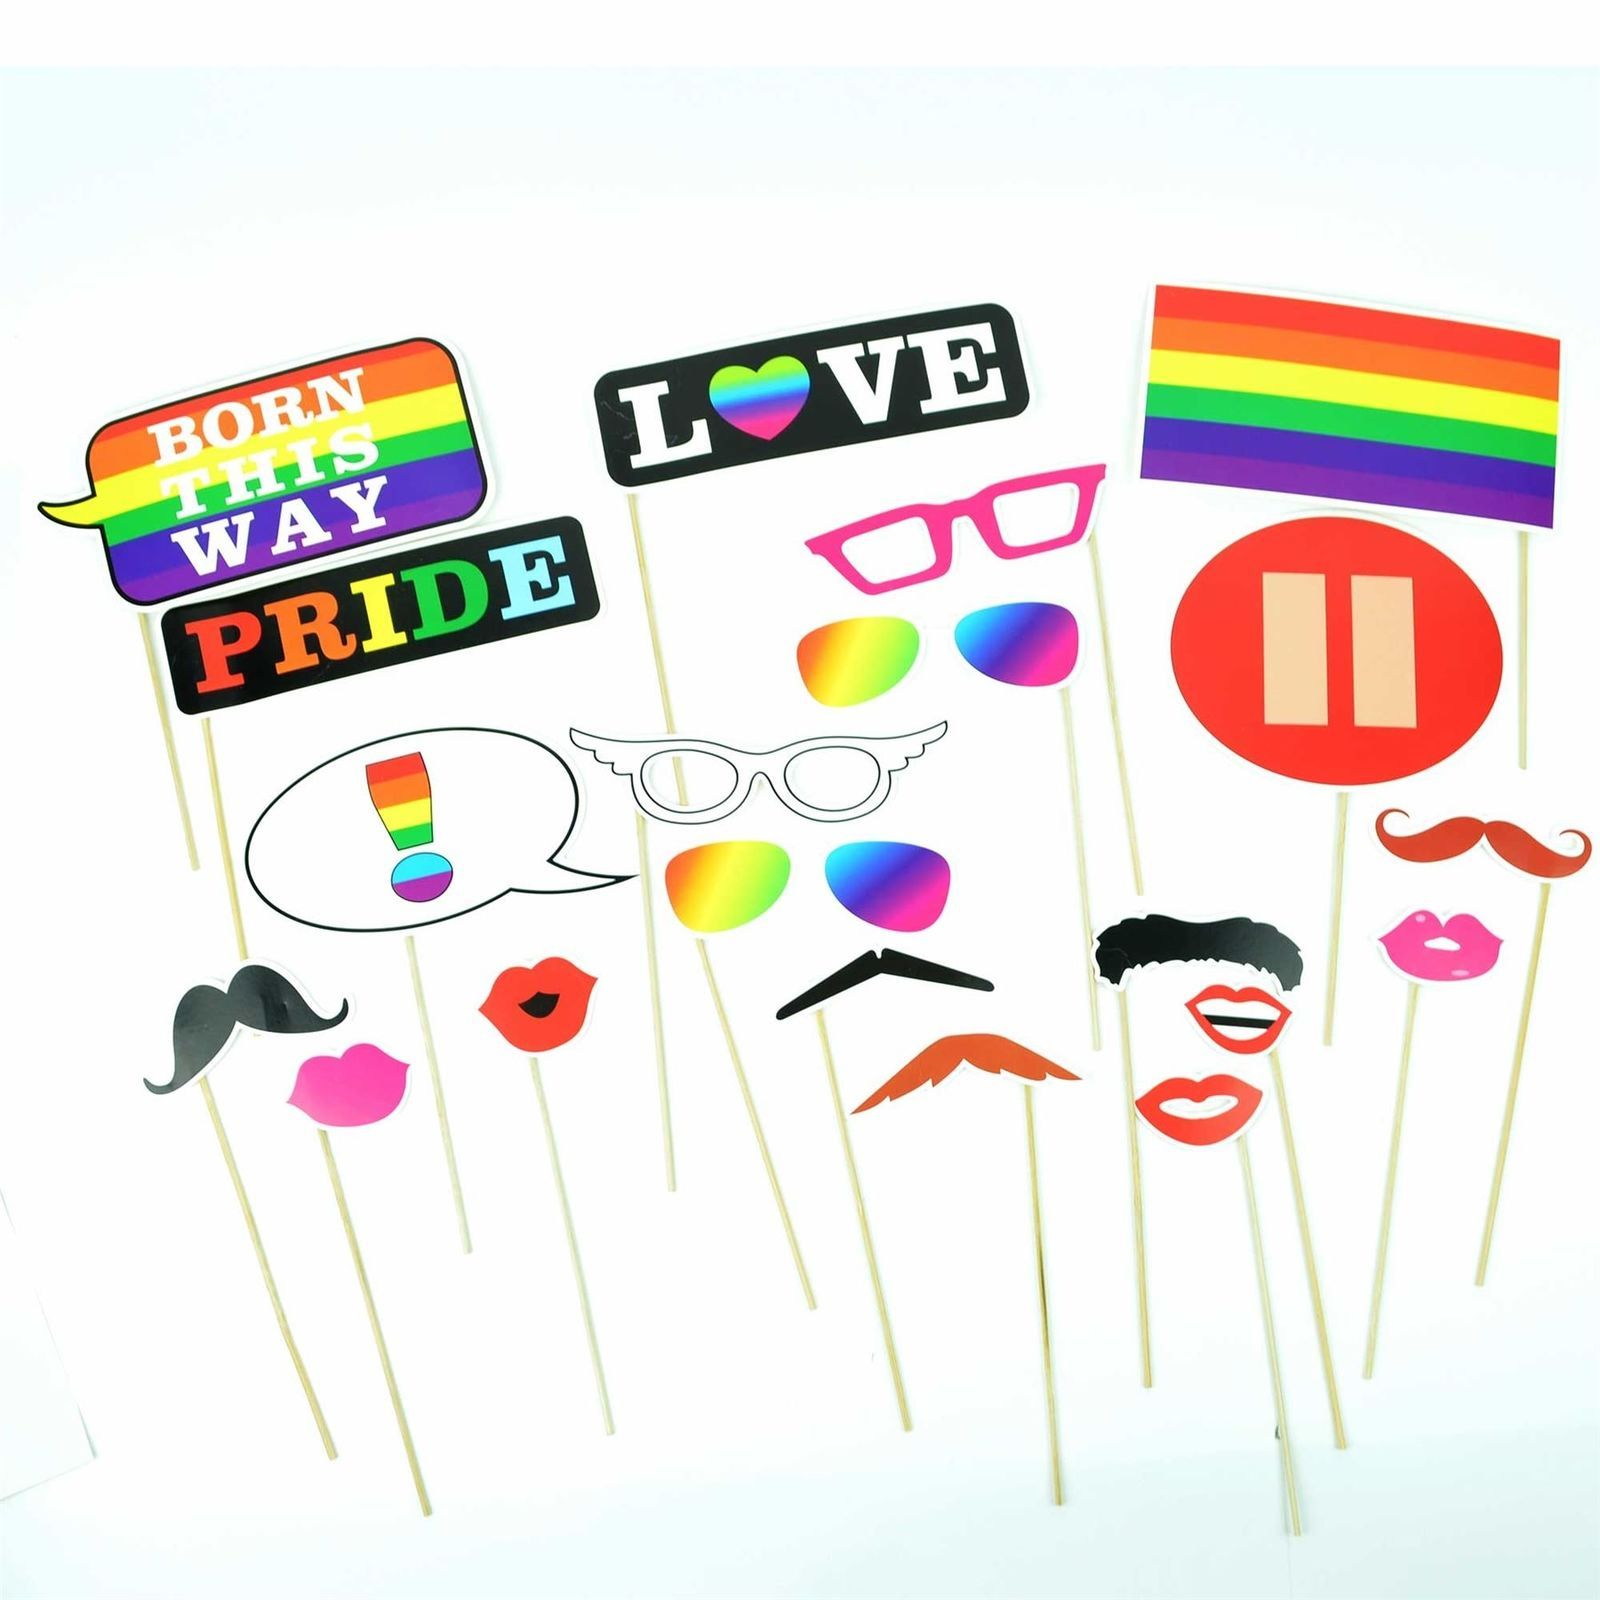 Gay Pride Parade Festival Photo Booth Props Glbt Wedding Party Games